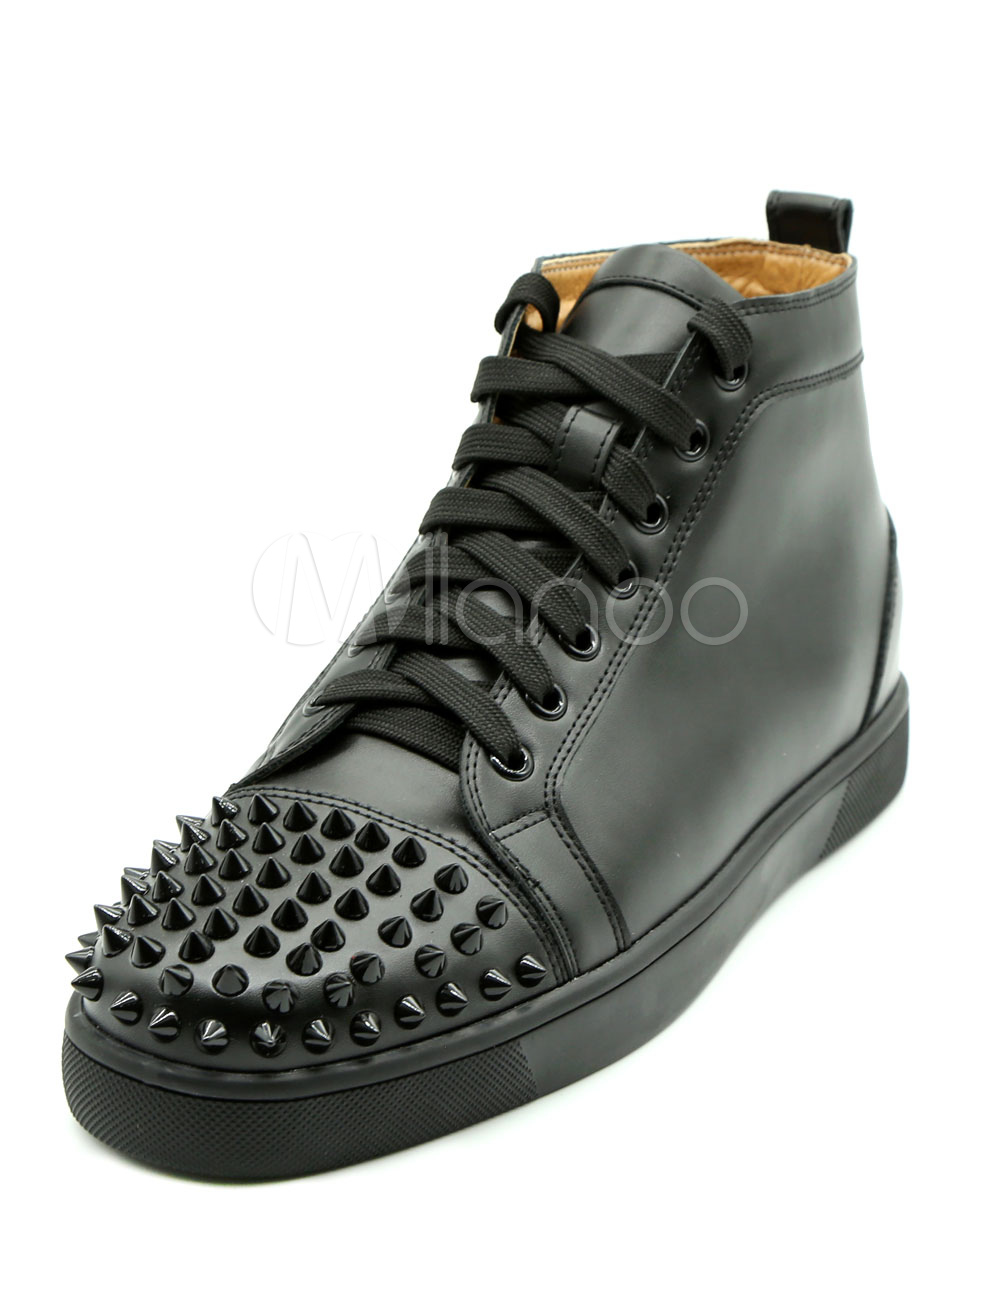 Men's Black Sneakers Leather Round Toe Lace Up Rivets High Top Skate Shoes thumbnail